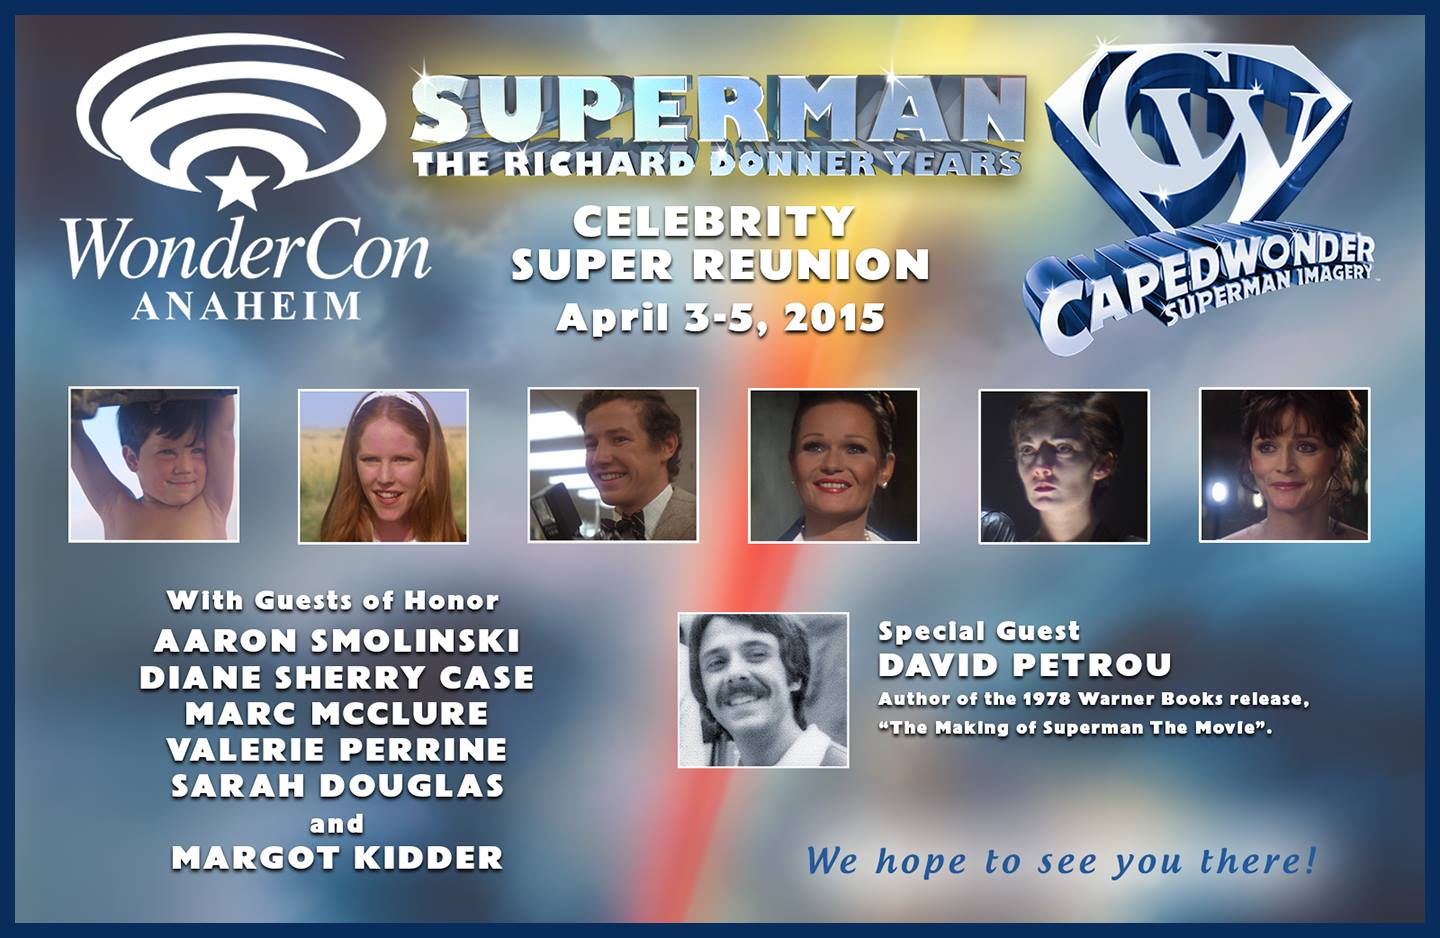 wondercon_super_reunion